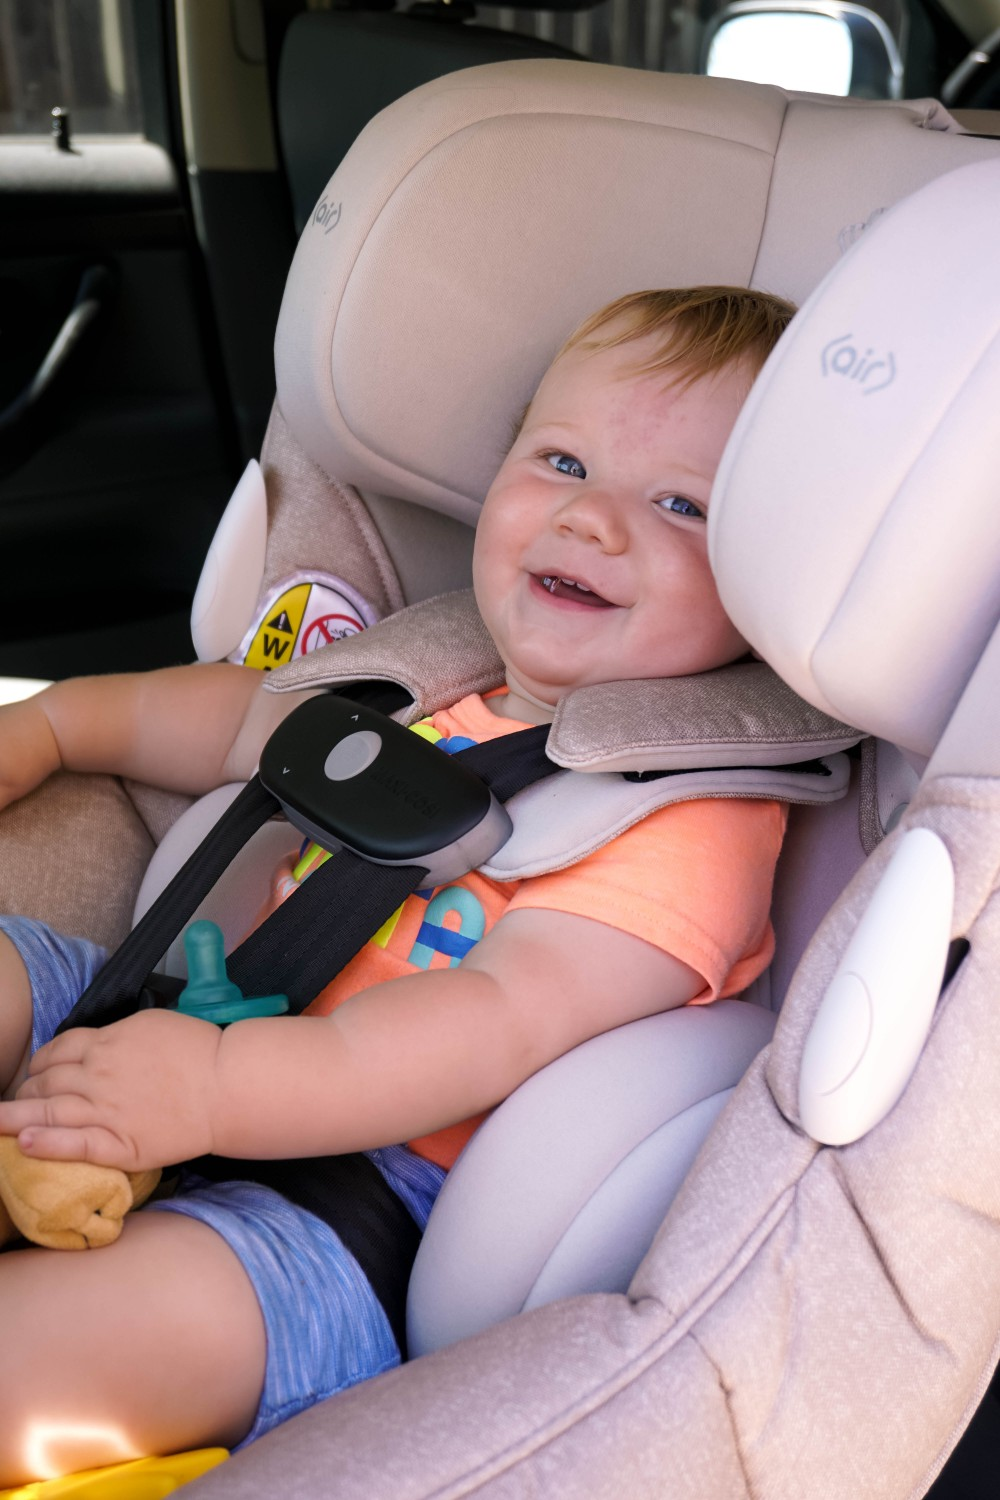 Maxi-Cosi Pria 85 Max Convertible Car Seat-Maxi Cosi Car Seat-Baby Gear-Best of Baby Products-Convertible Car Seat-Motherhood Post-Have Need Want 18